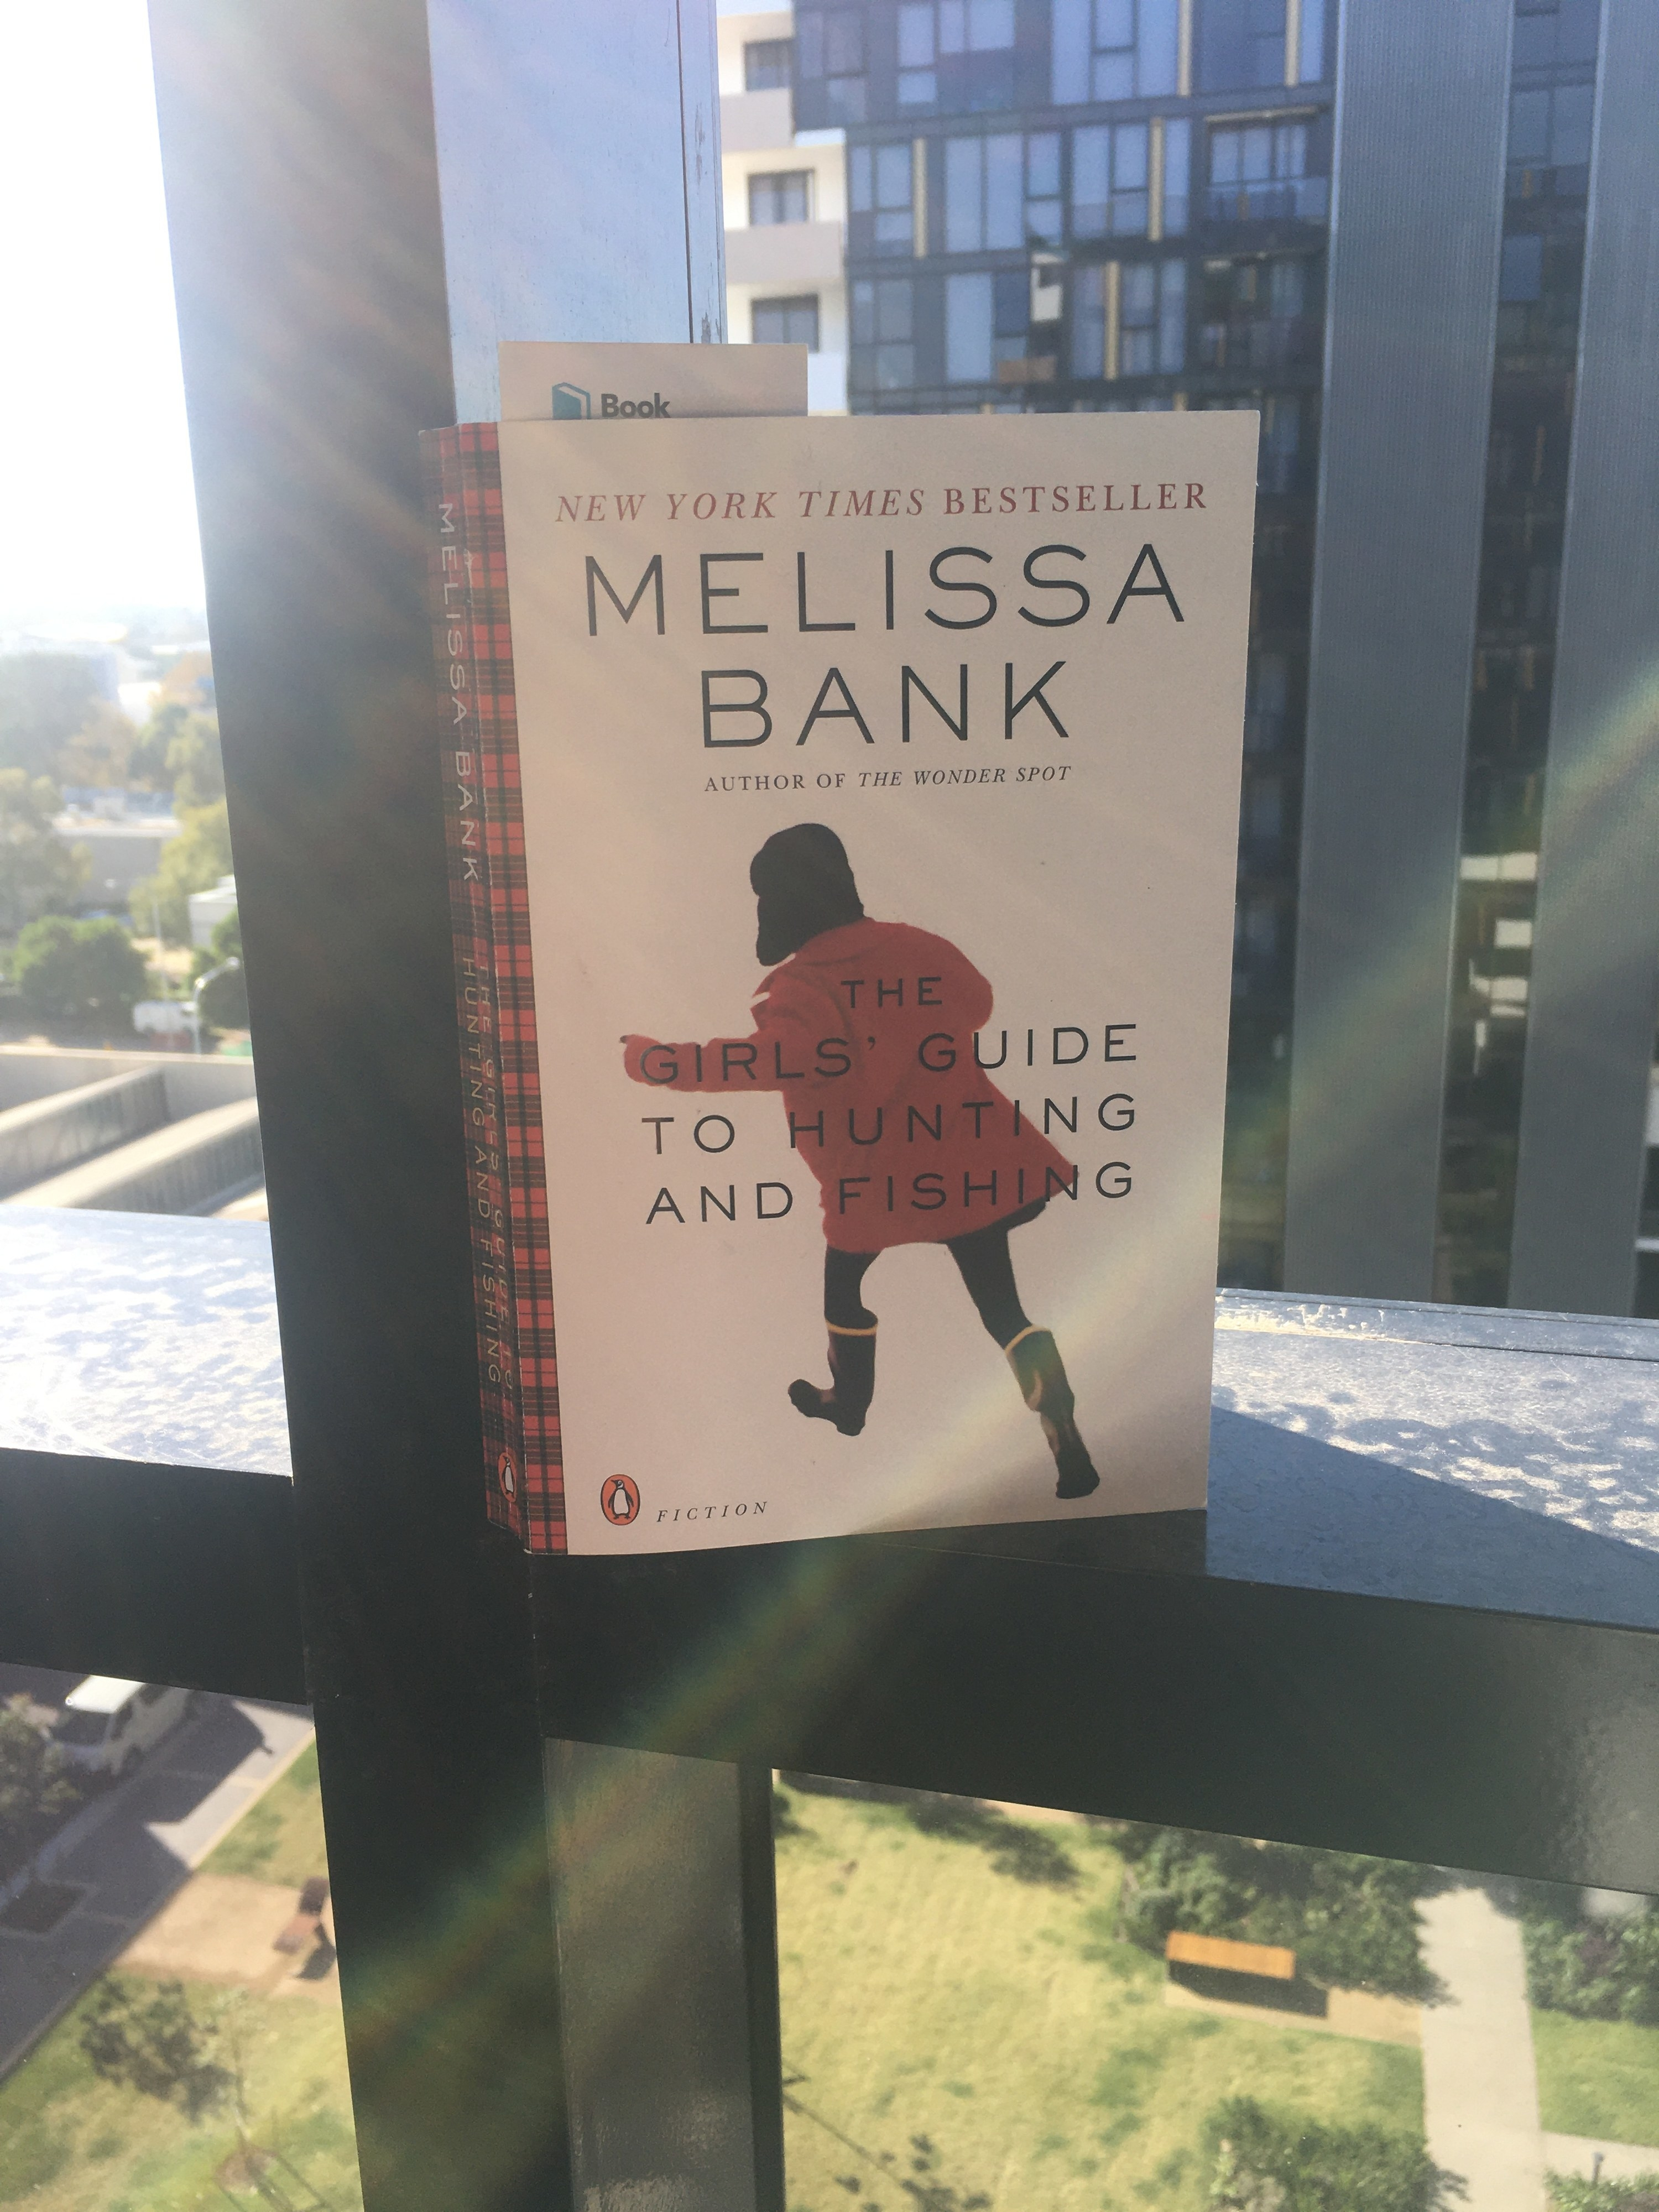 Book sitting on a window ledge showing a girl in a red jacket running away